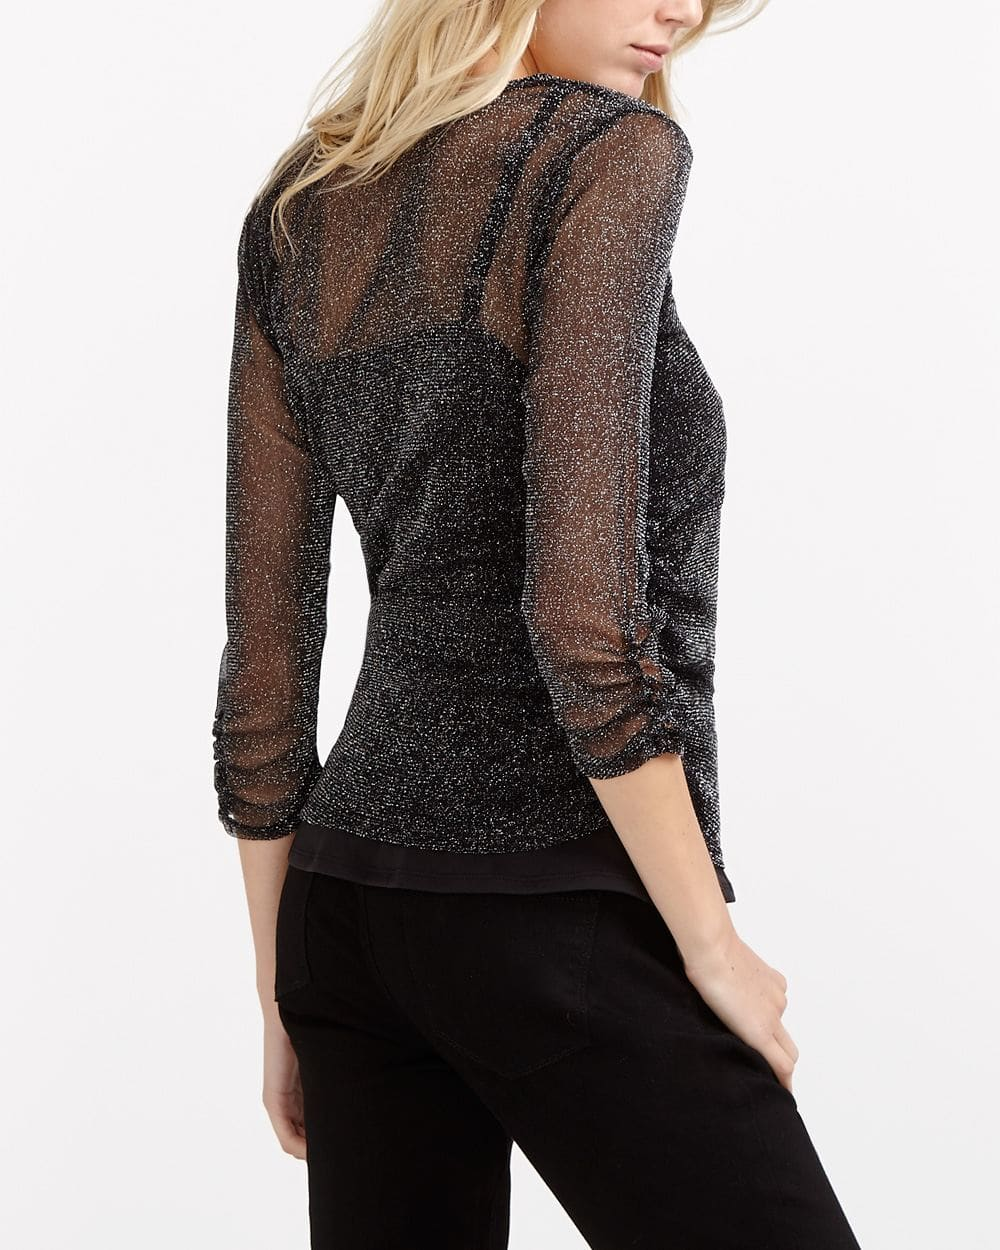 ¾ Ruched Sleeve Mesh Top